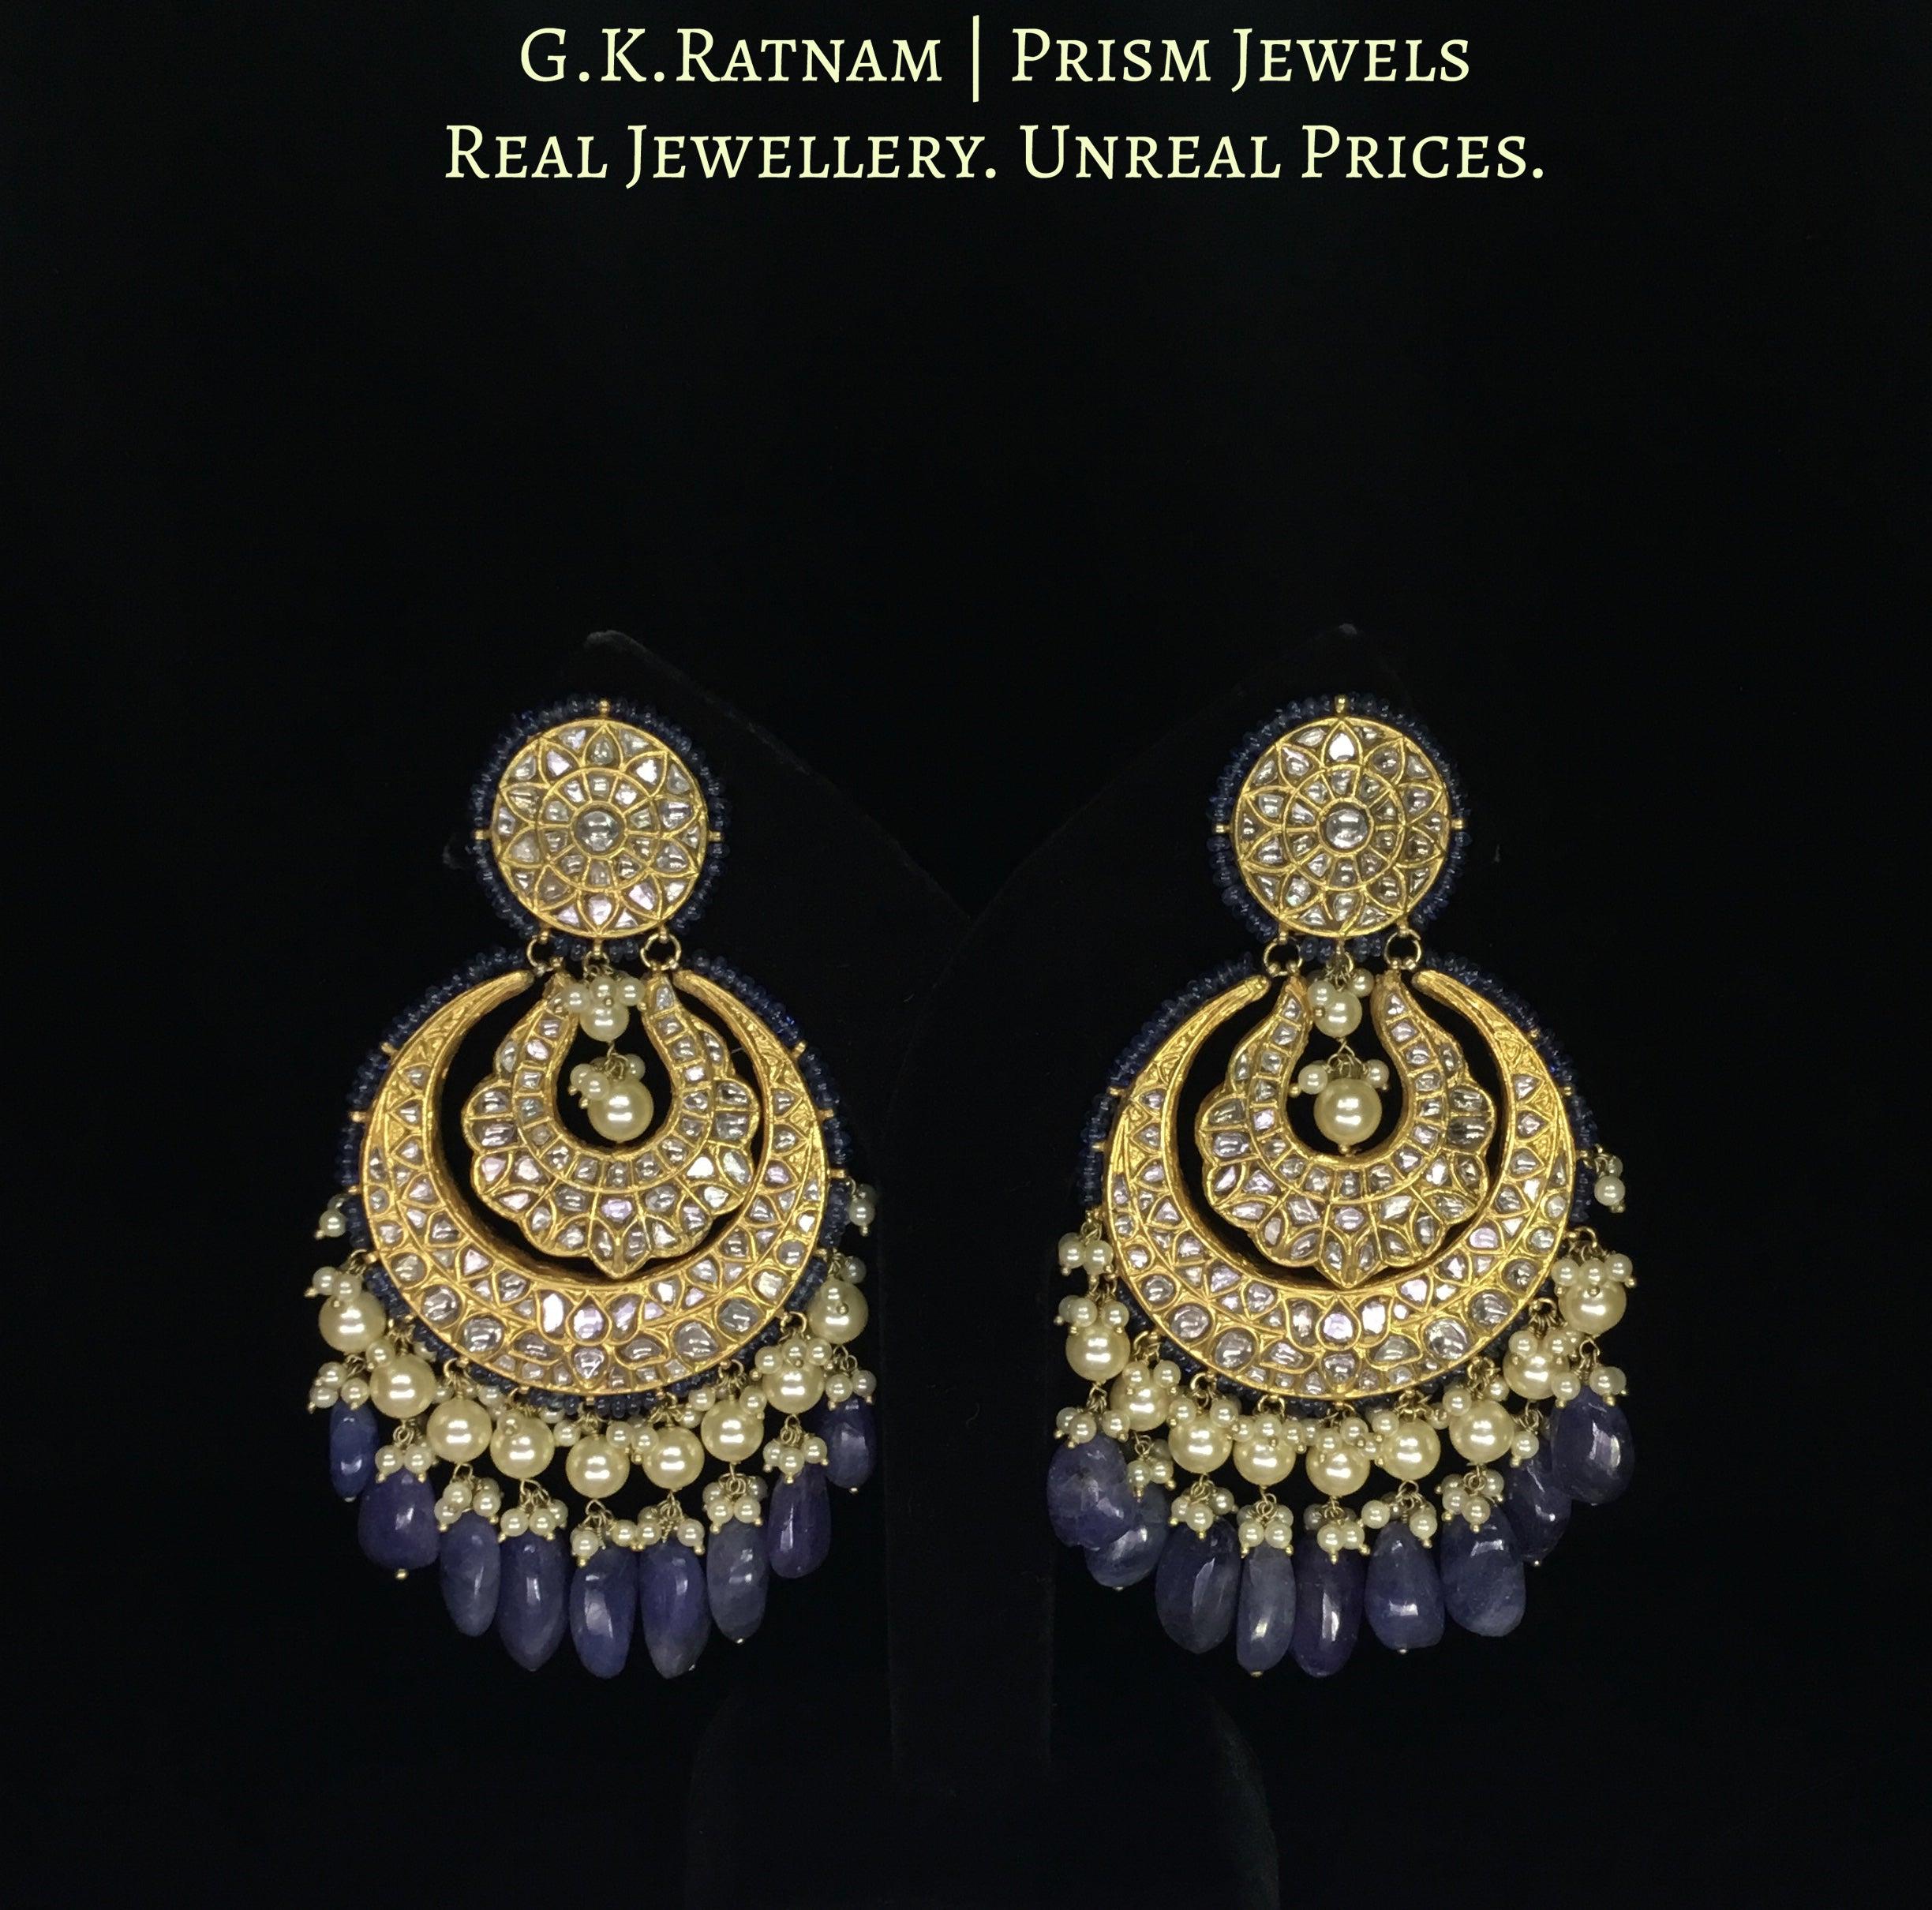 23k Gold and Diamond Polki Chand Bali Earring Pair strung with Blue Sapphires and lustrous Pearls